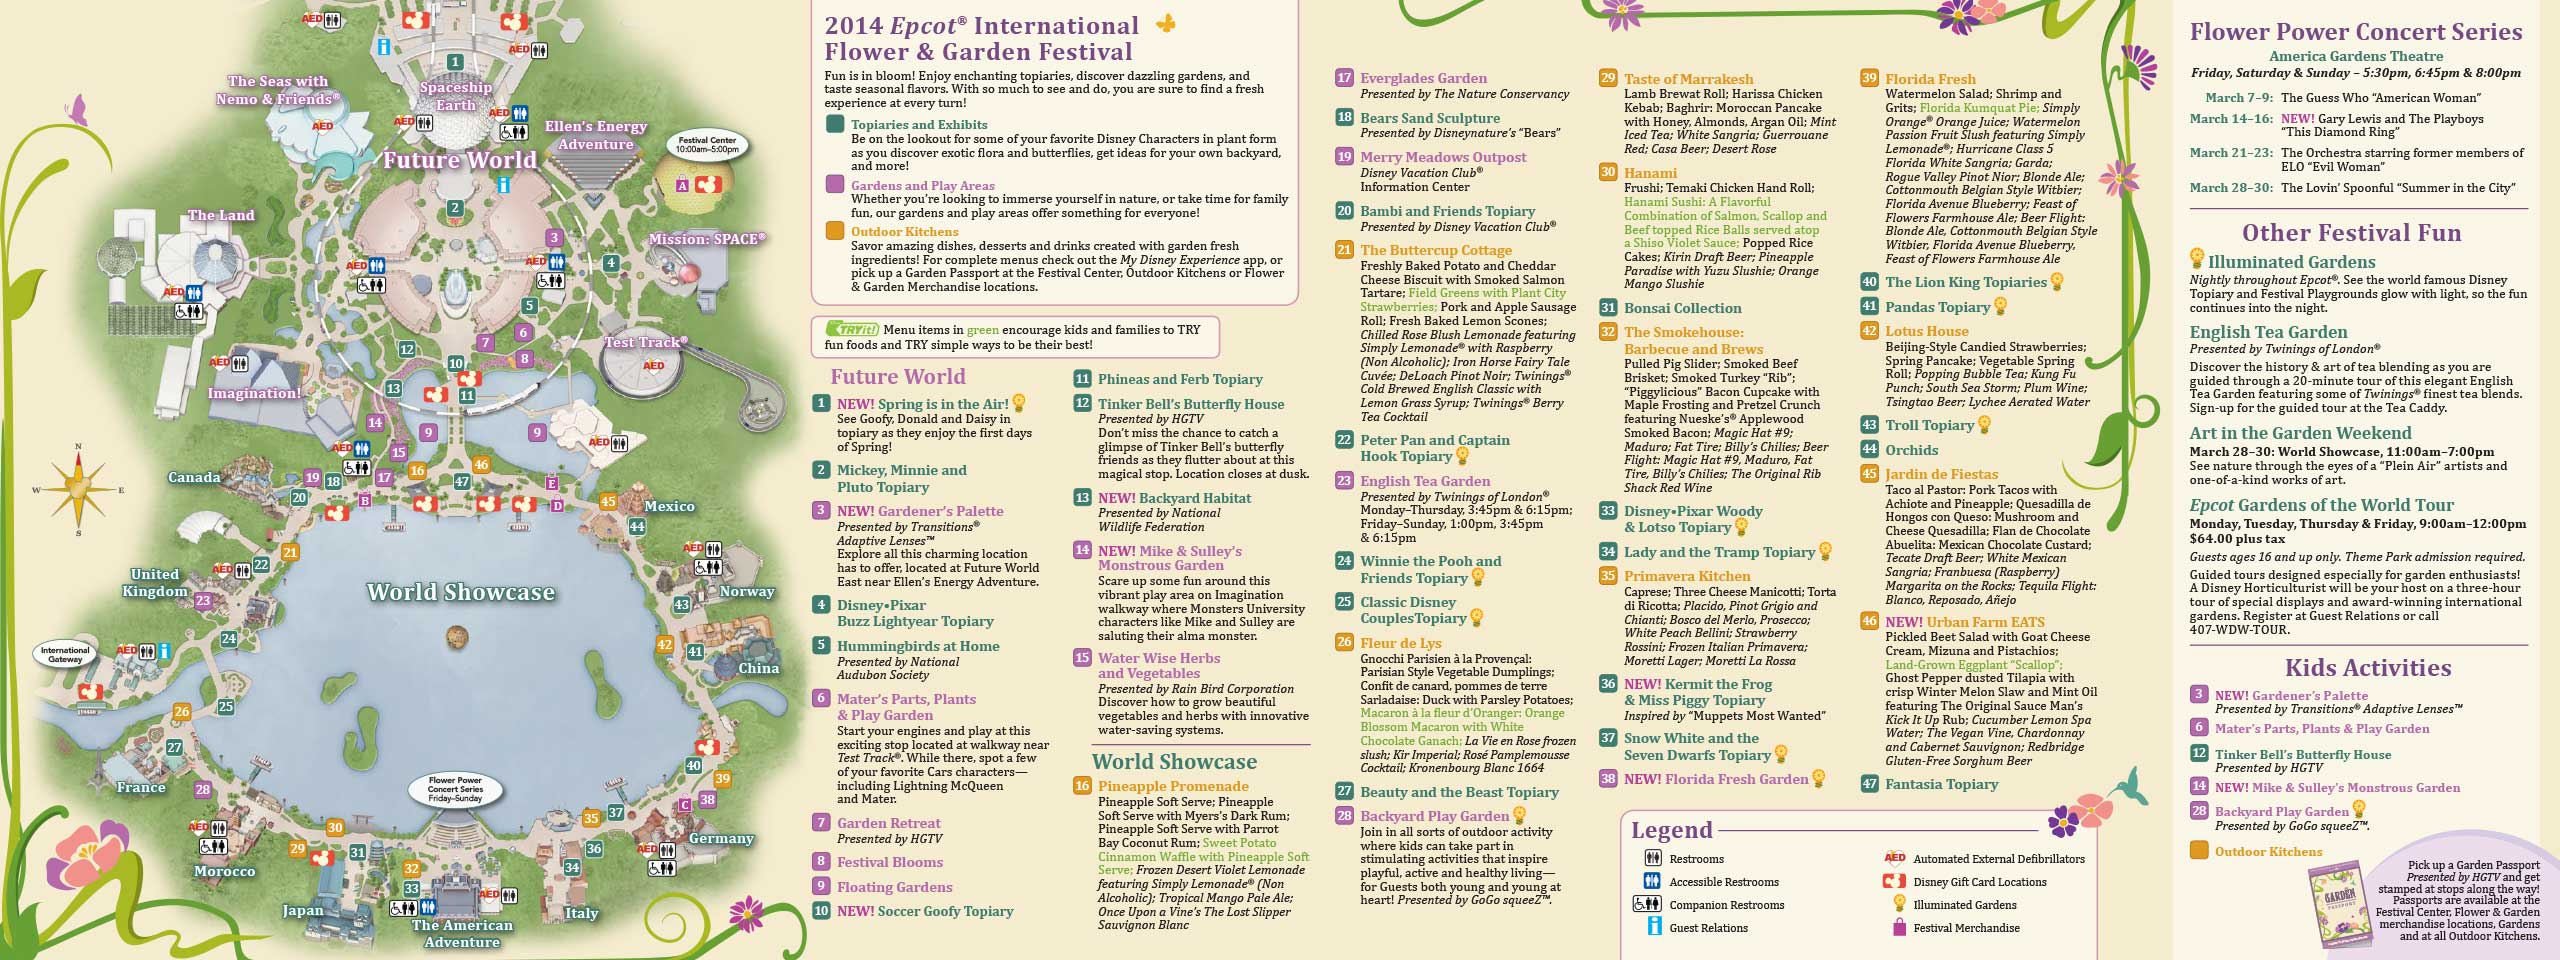 2014 Epcot Flower and Garden Festival guide map - Photo 1 of 2